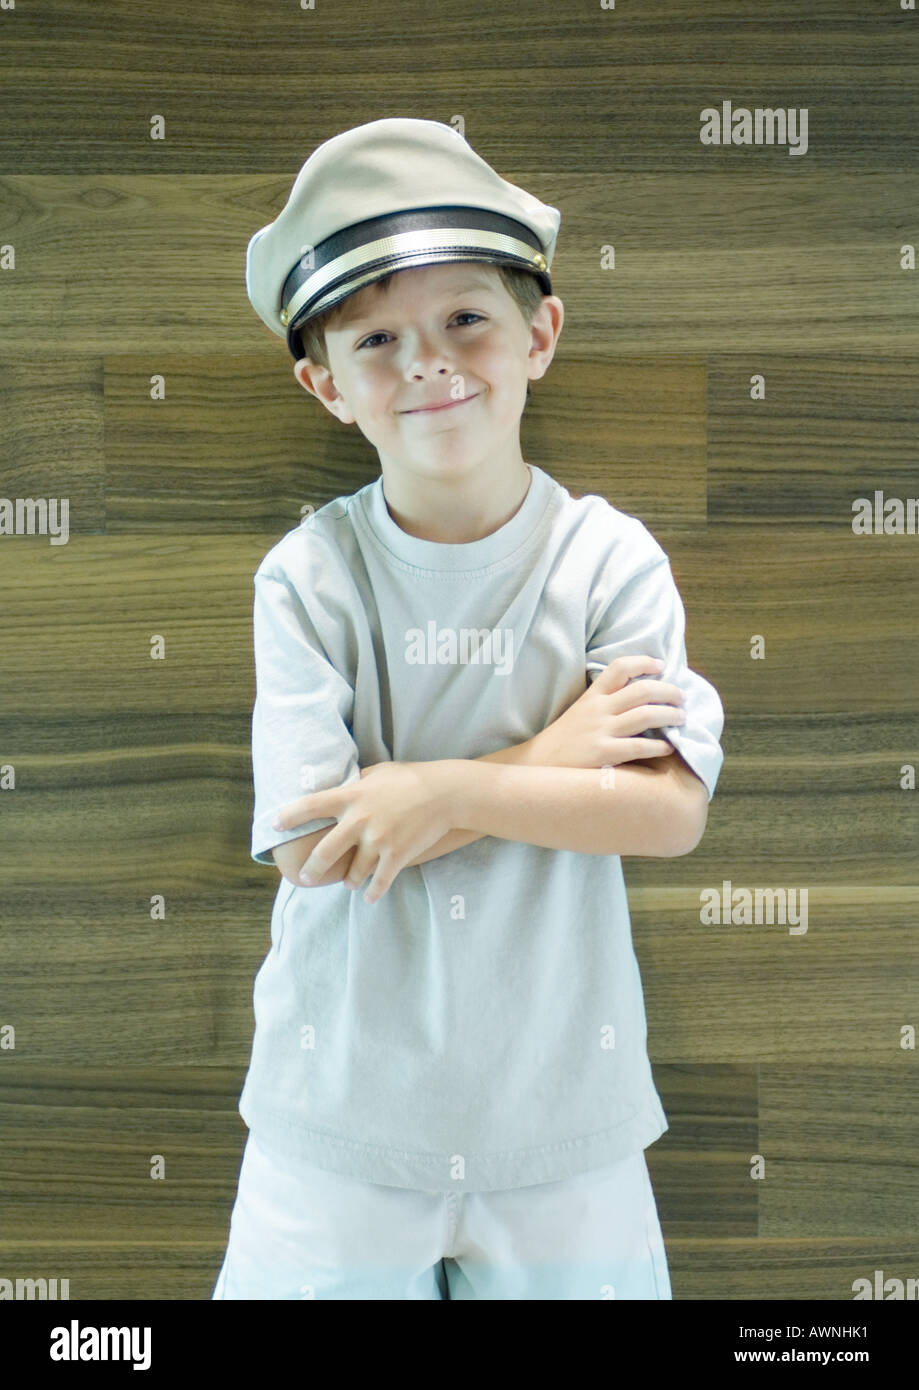 Boy wearing captain's hat - Stock Image